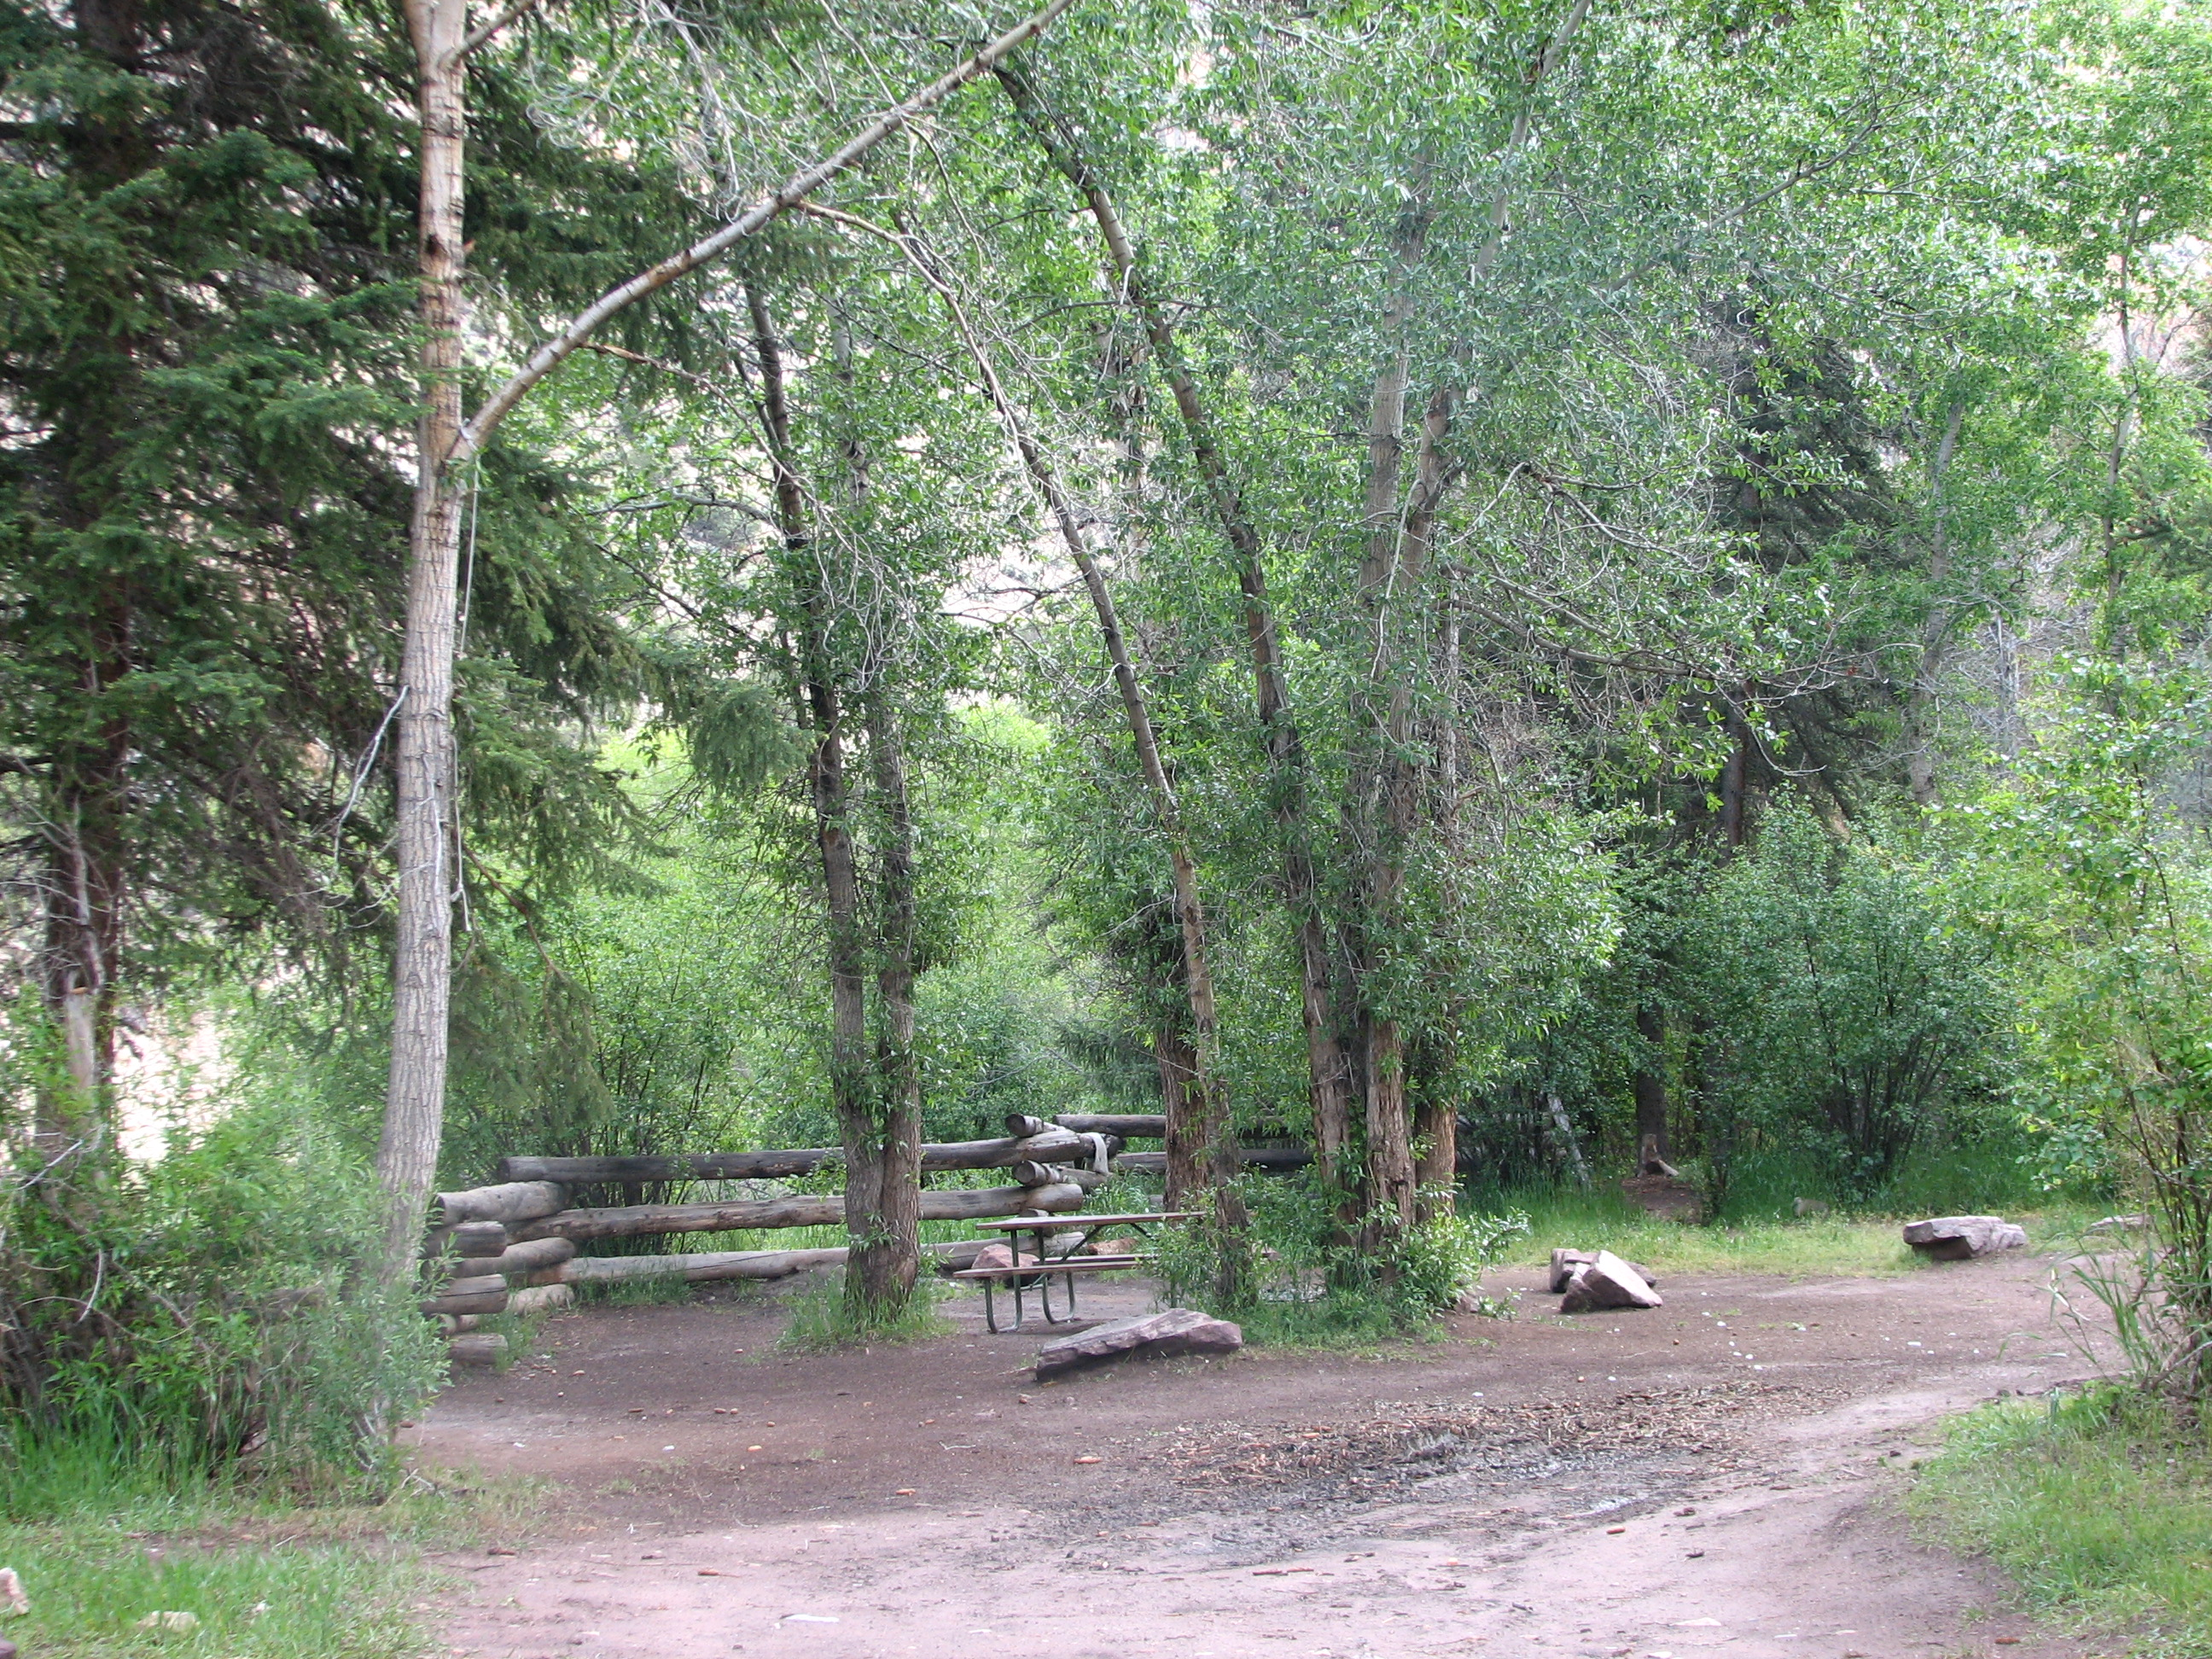 Photo of a site at the Willows Campground.